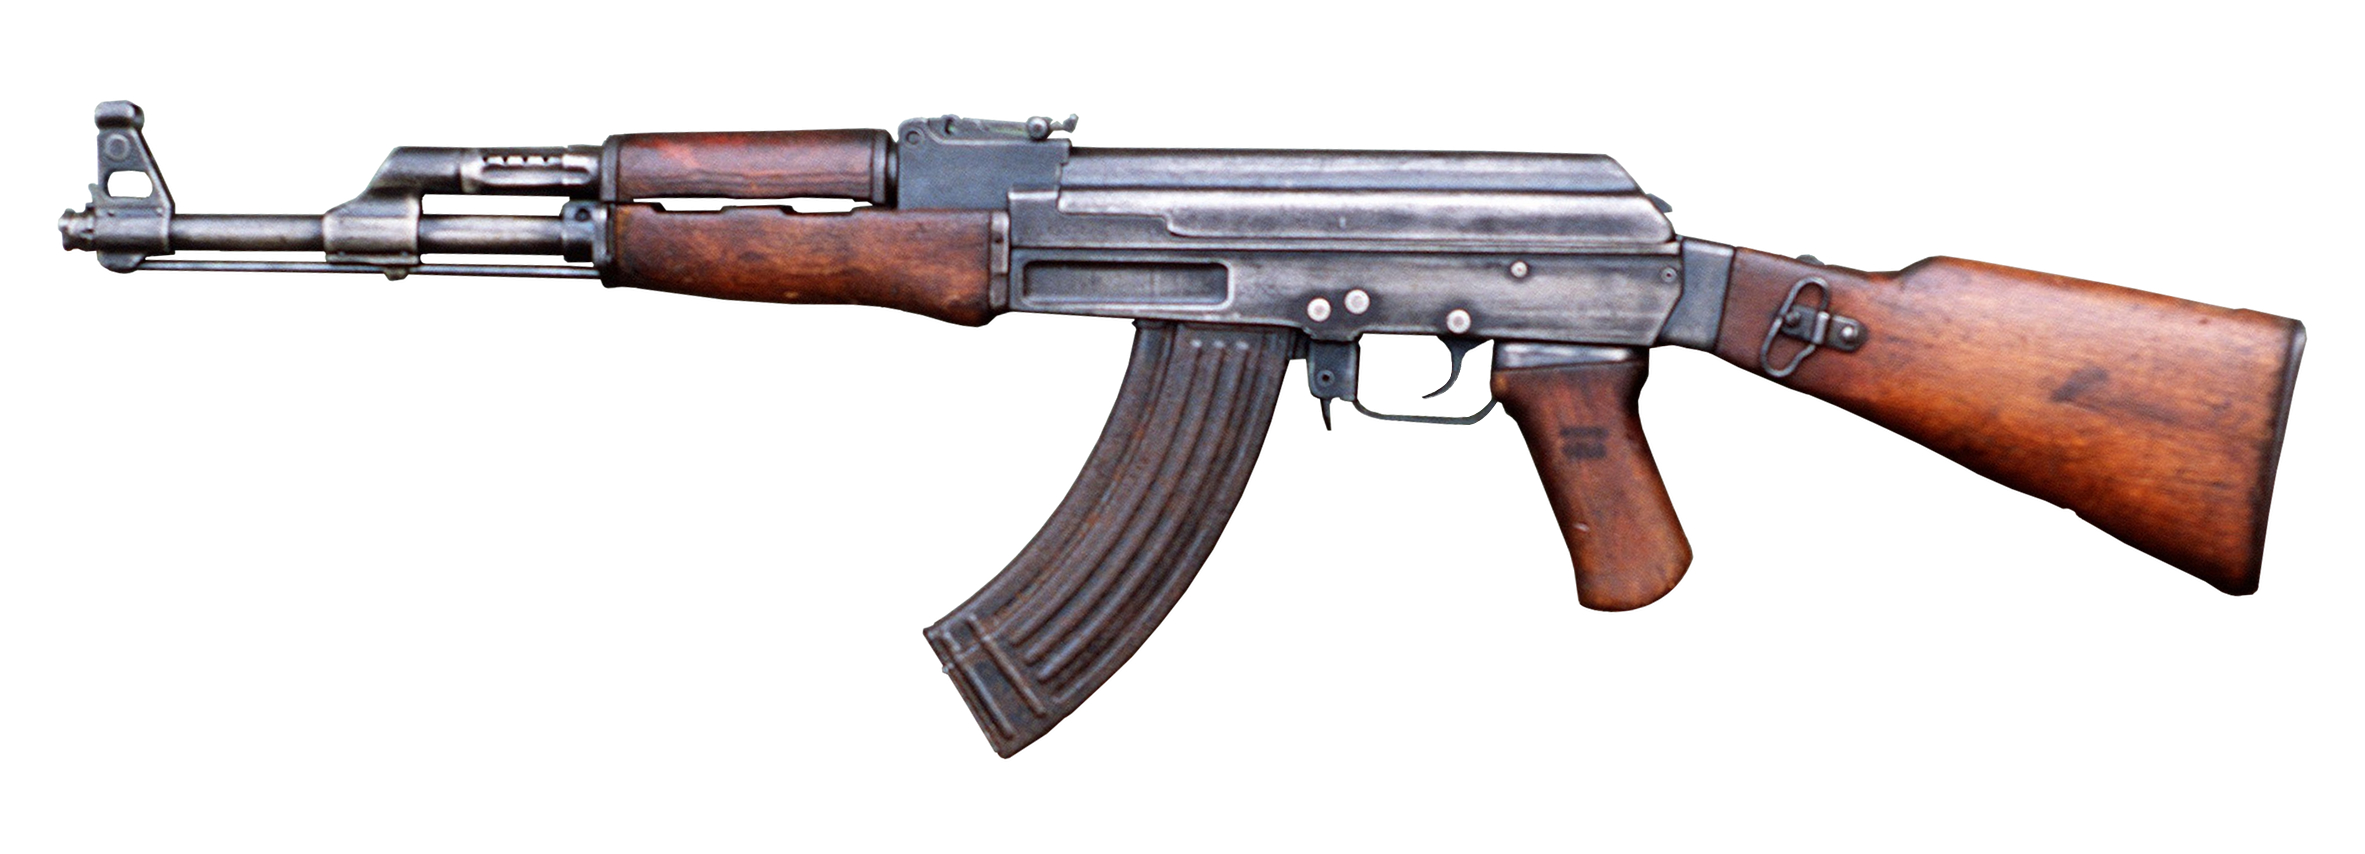 https://upload.wikimedia.org/wikipedia/commons/5/57/AK-47_type_II_Part_DM-ST-89-01131.jpg